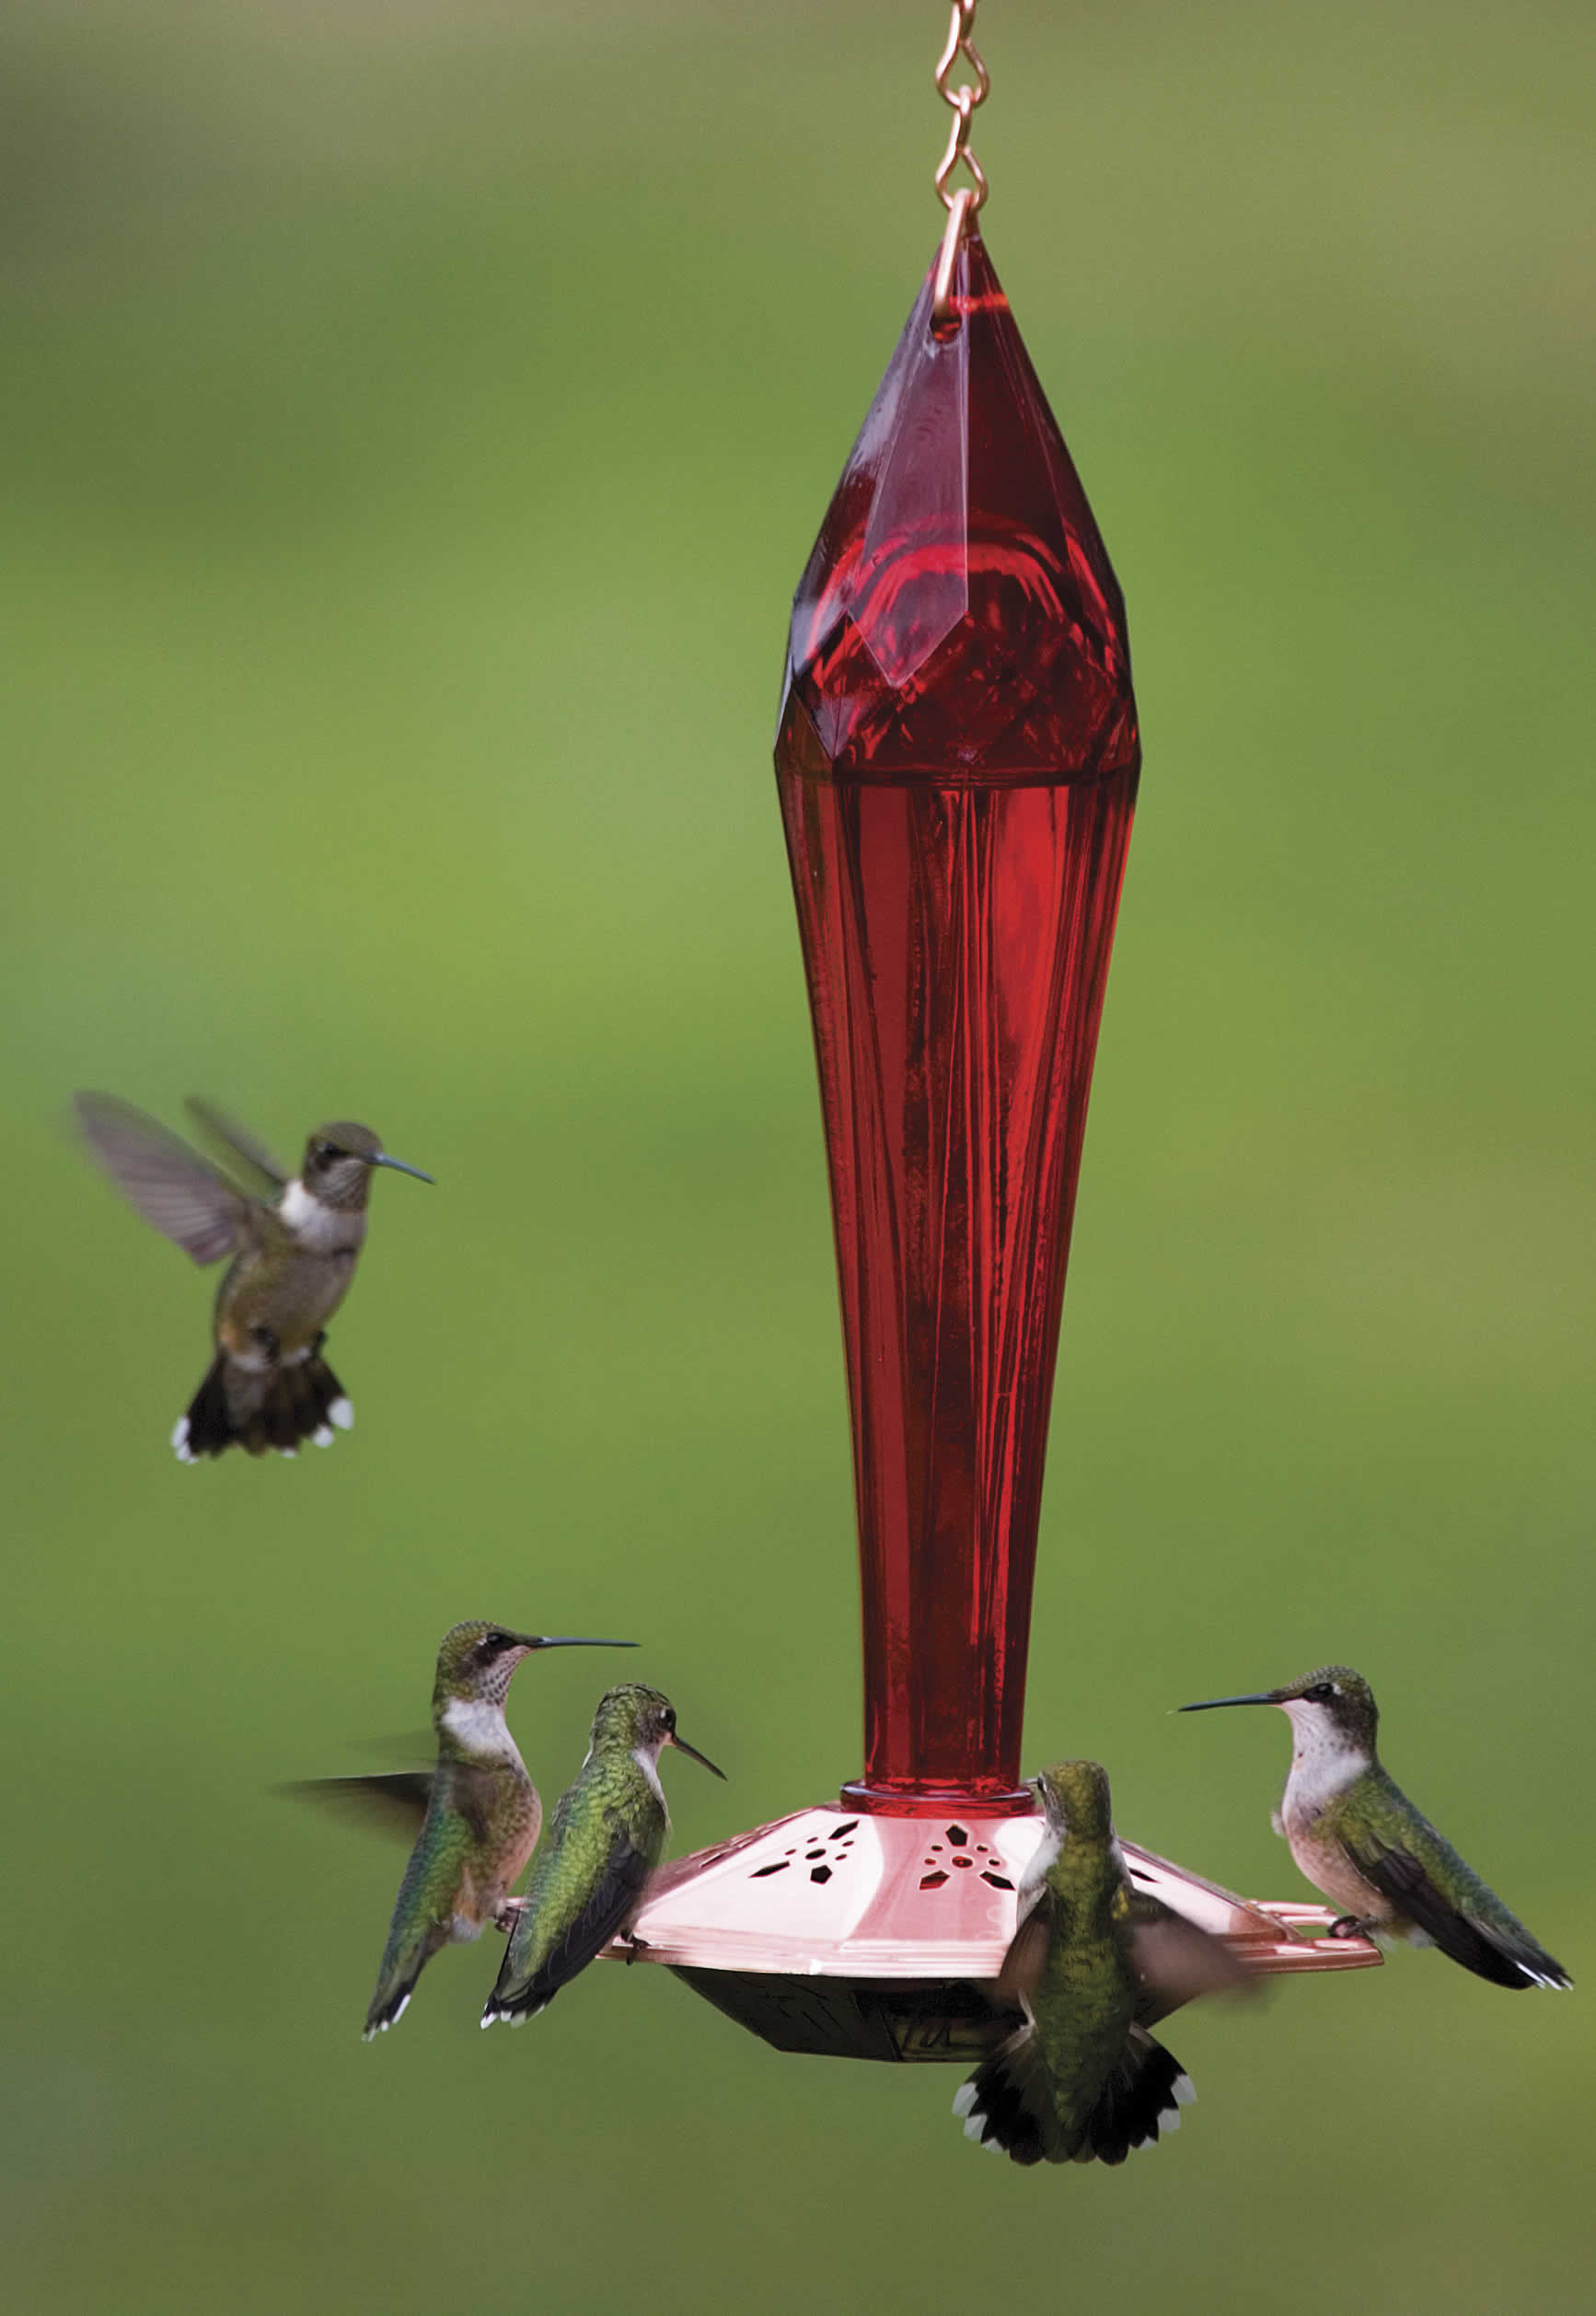 for sphere love like inch hummers feeder glass hummingbirds attracts decorative beautiful crazy sale best small feeders hummingbird hanging we products